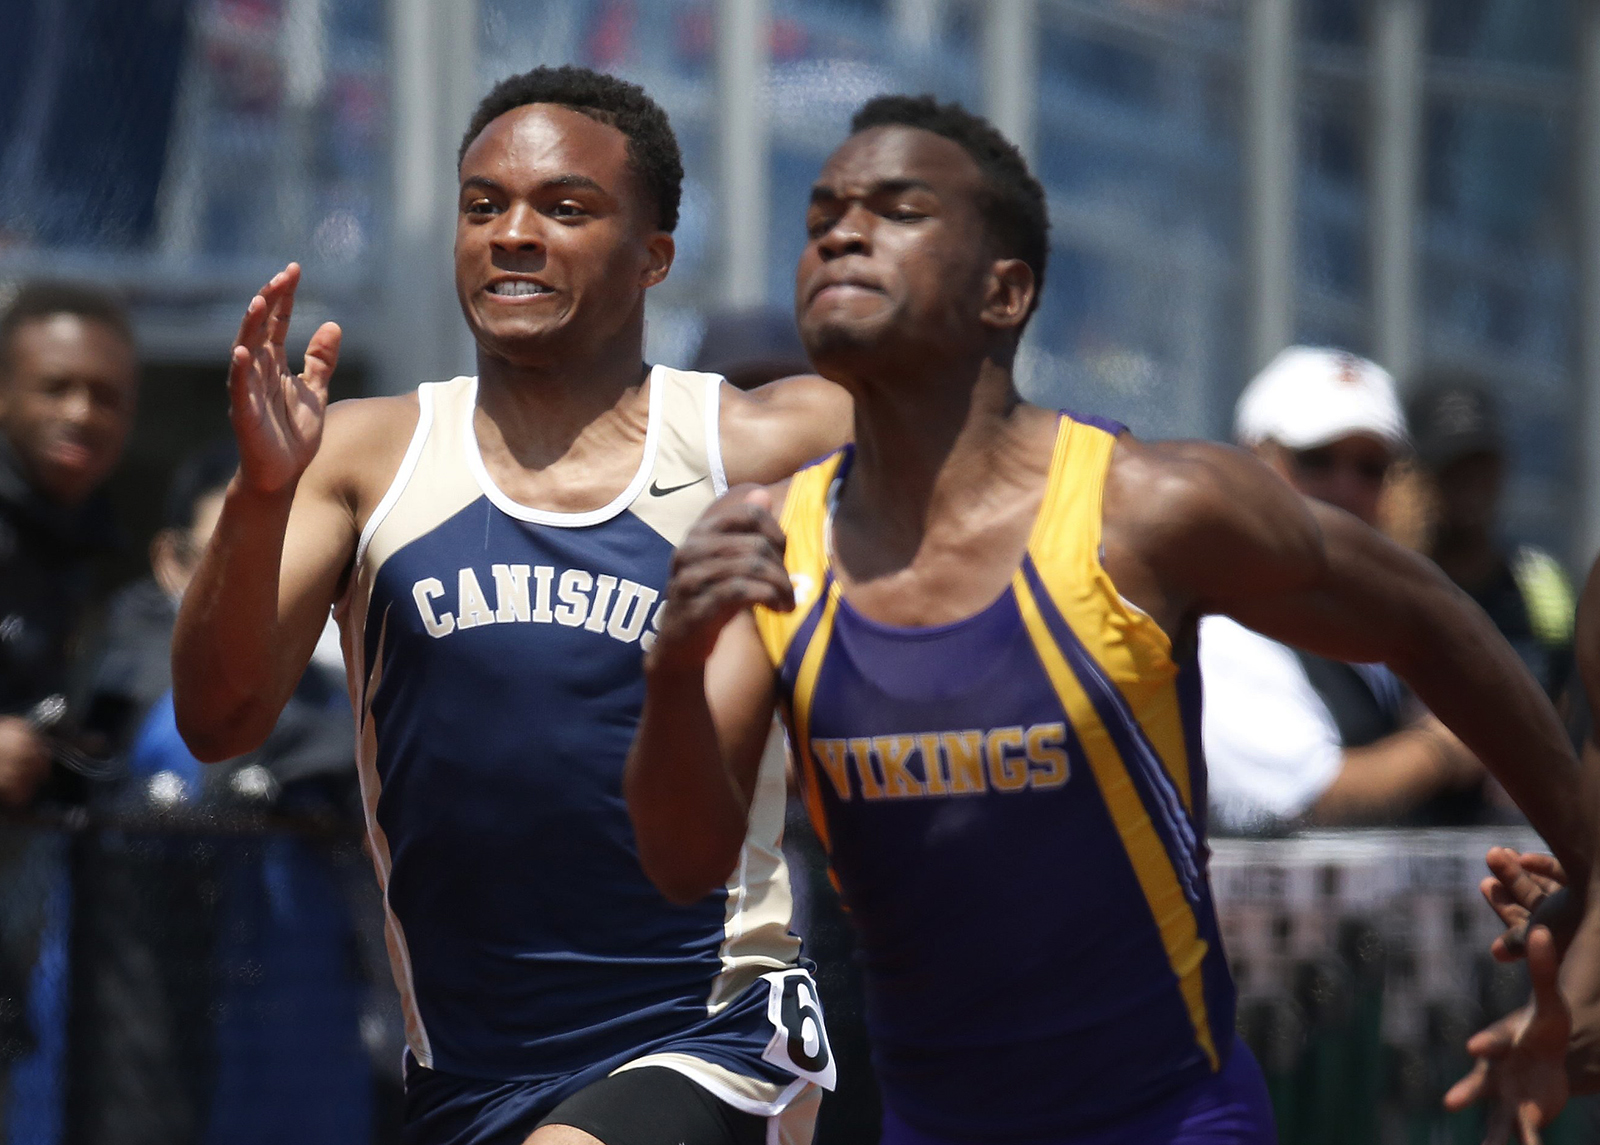 Desmond Nicholas from Canisius competes in the 100 final during the NYSPHSAA Track & Field Championships at Cicero-North high school on Saturday, June 11, 2016. (Harry Scull Jr./Buffalo News)